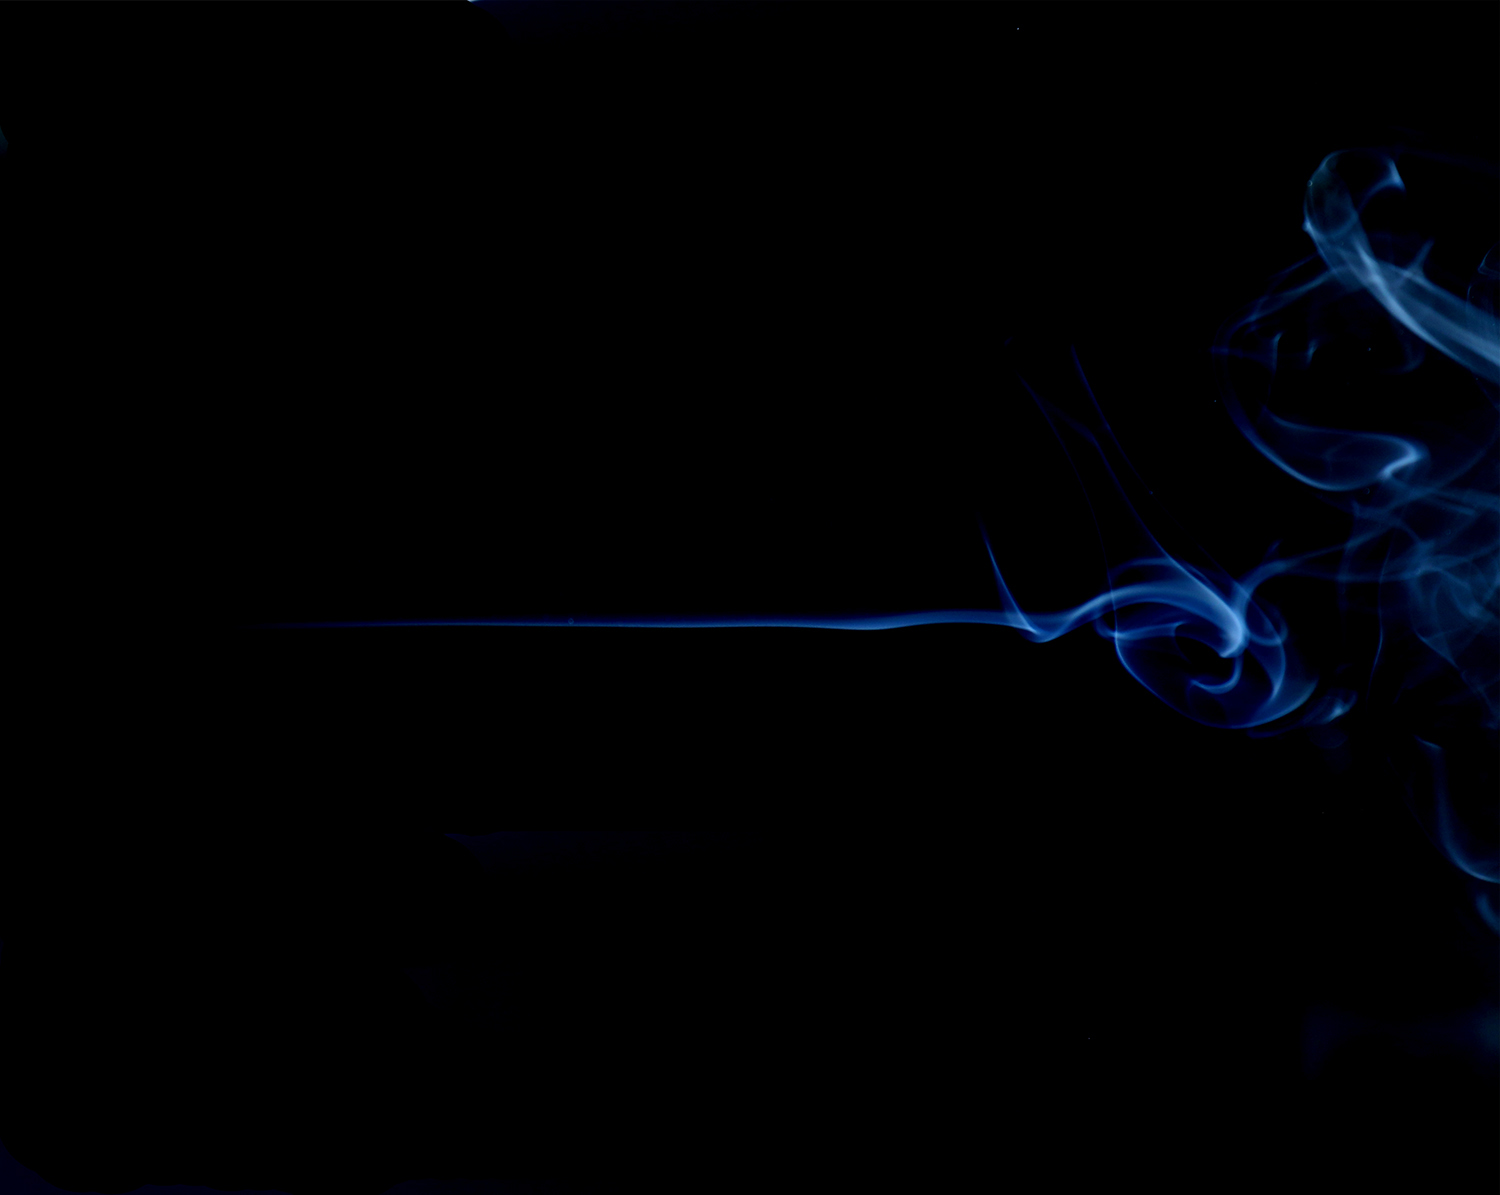 smoke, abstract, low key photography